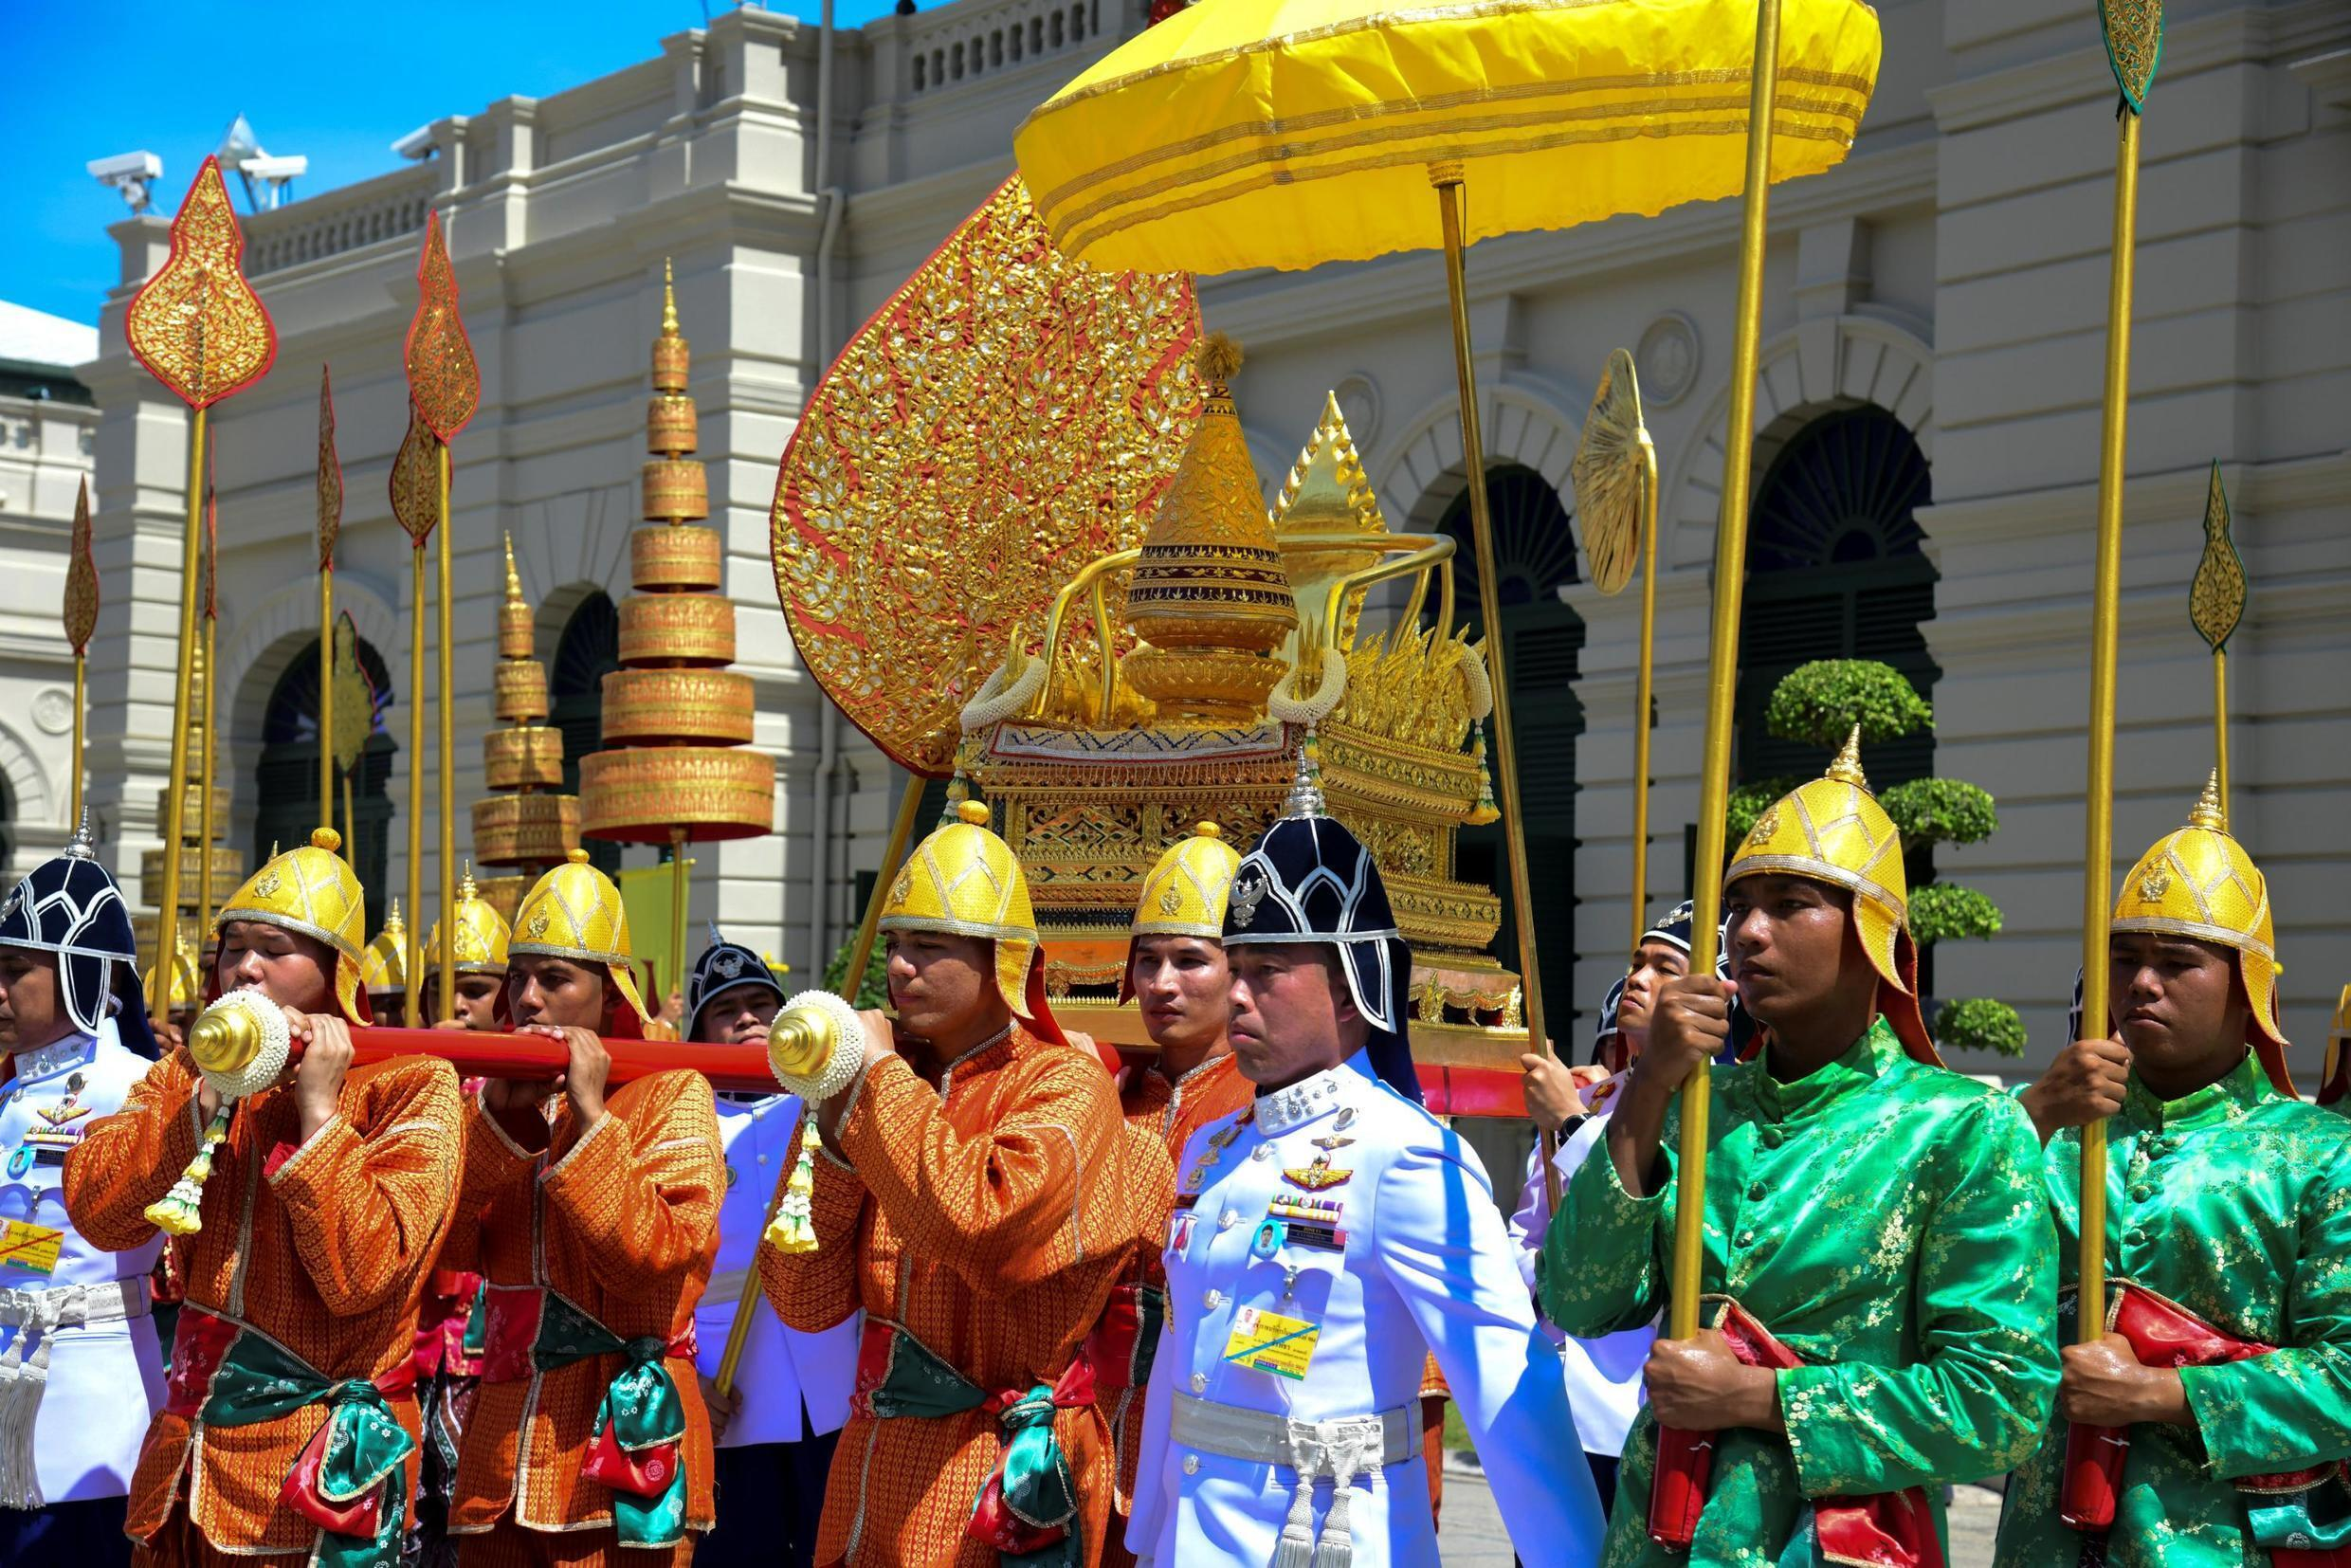 Thai soldiers dressed in traditional costumes transfer The Royal Golden Plaque of the official title of His Majesty the King, the Royal Golden Plaque of His Majesty's horoscope, and the Royal Seal of State at the Grand Palace in Bangkok